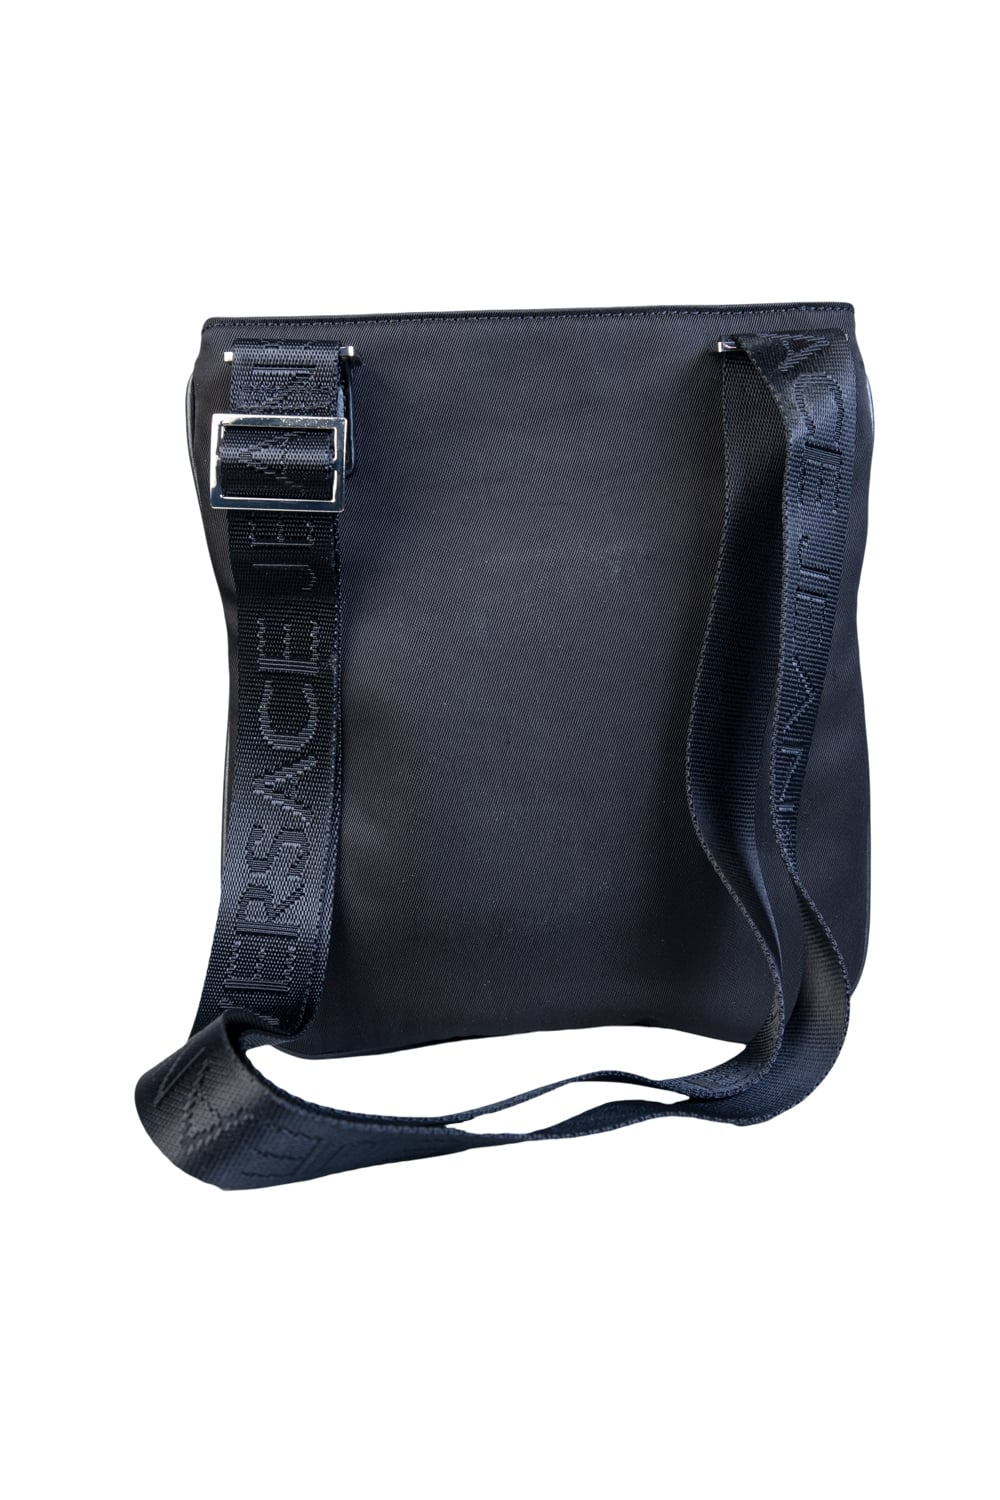 a910a1d0fb8 Versace Messenger Bags E1YRBB2270089 - Accessories from Sage Clothing UK